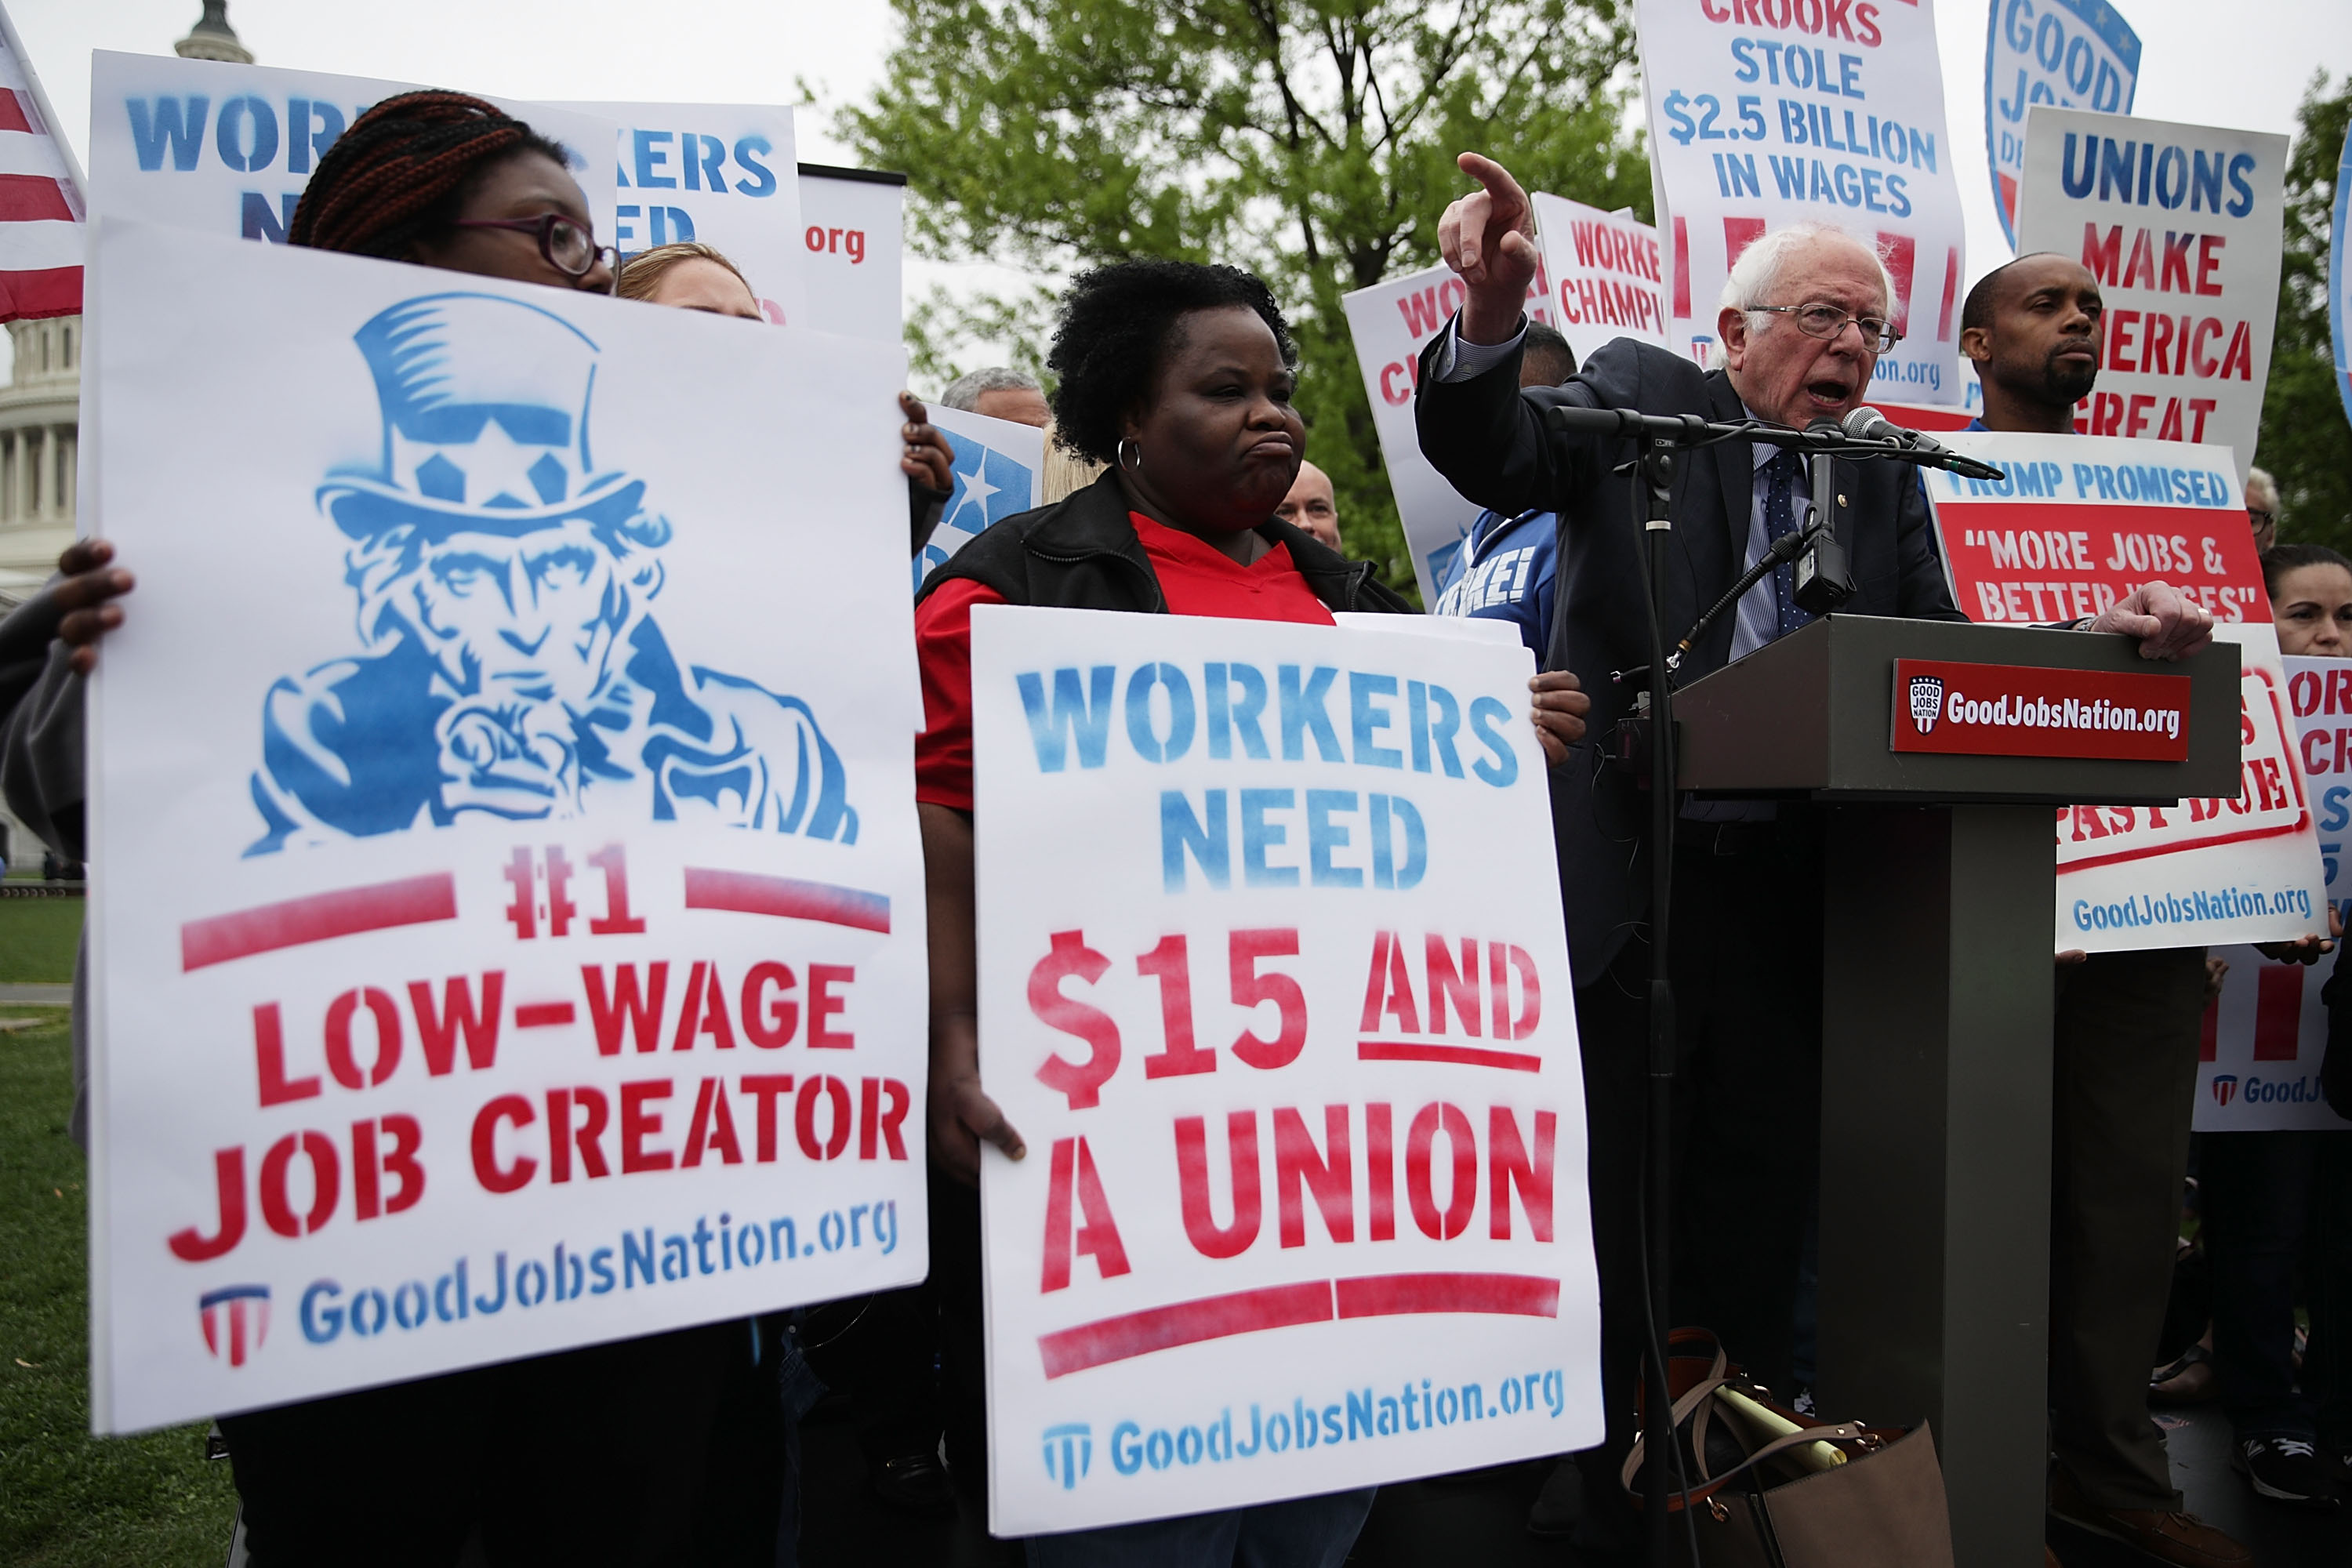 Bernie Sanders's ambitious plan to double union membership, explained